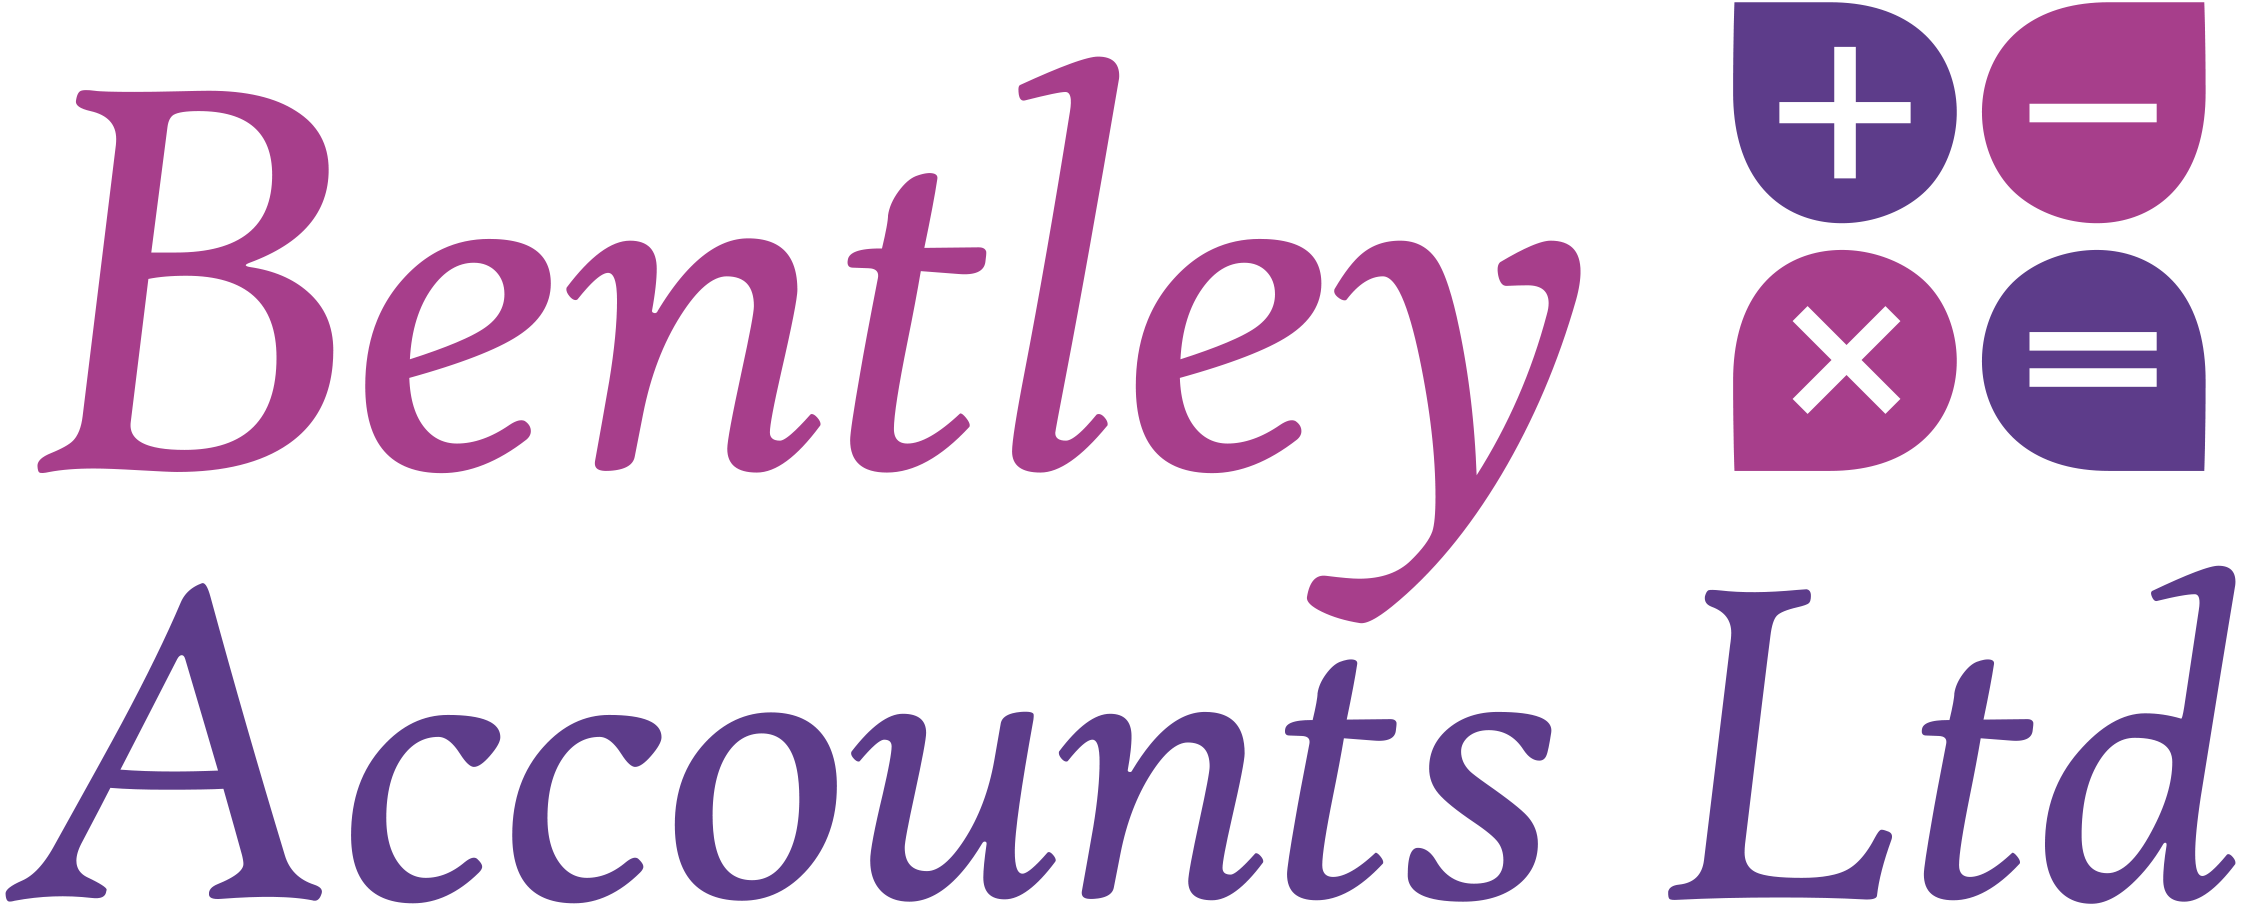 Bentley Accounts Ltd